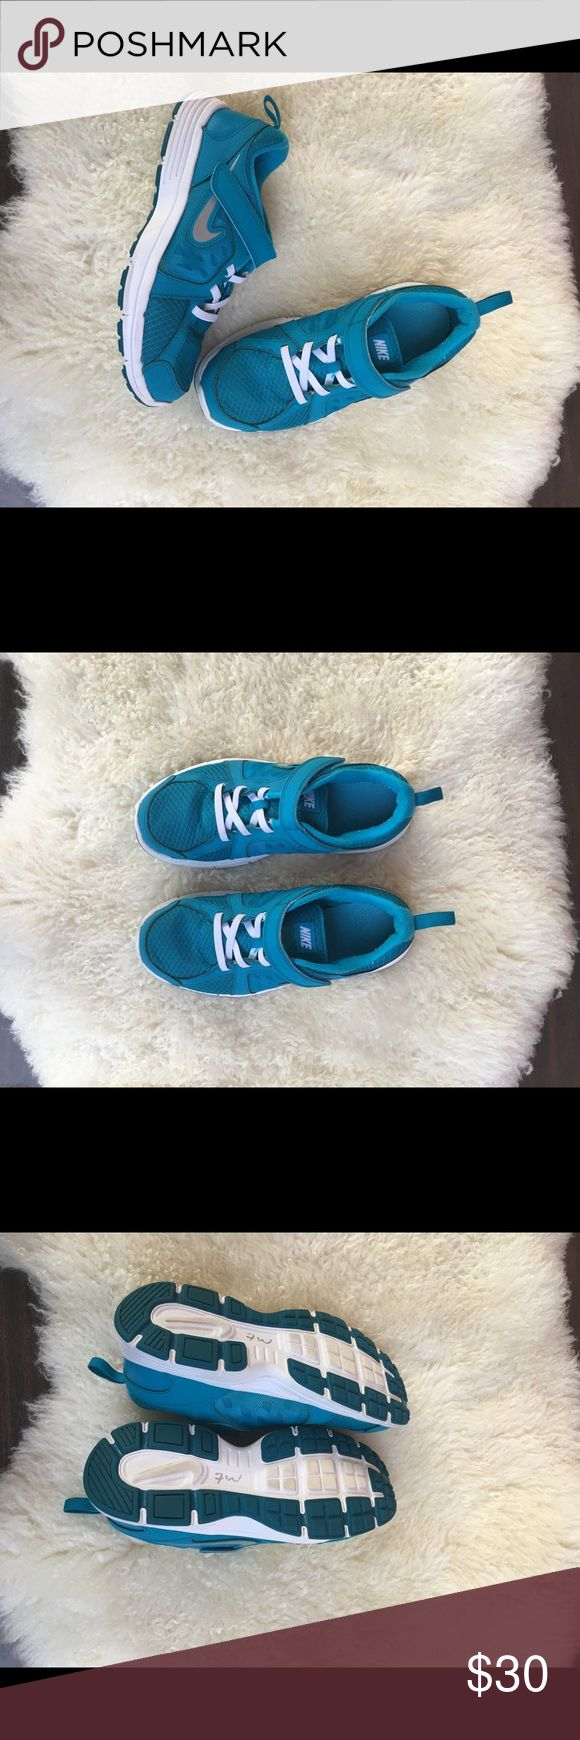 Nike tennis shoes for kids💕 Gently worn, dry cleaned. Nike Shoes Sneakers